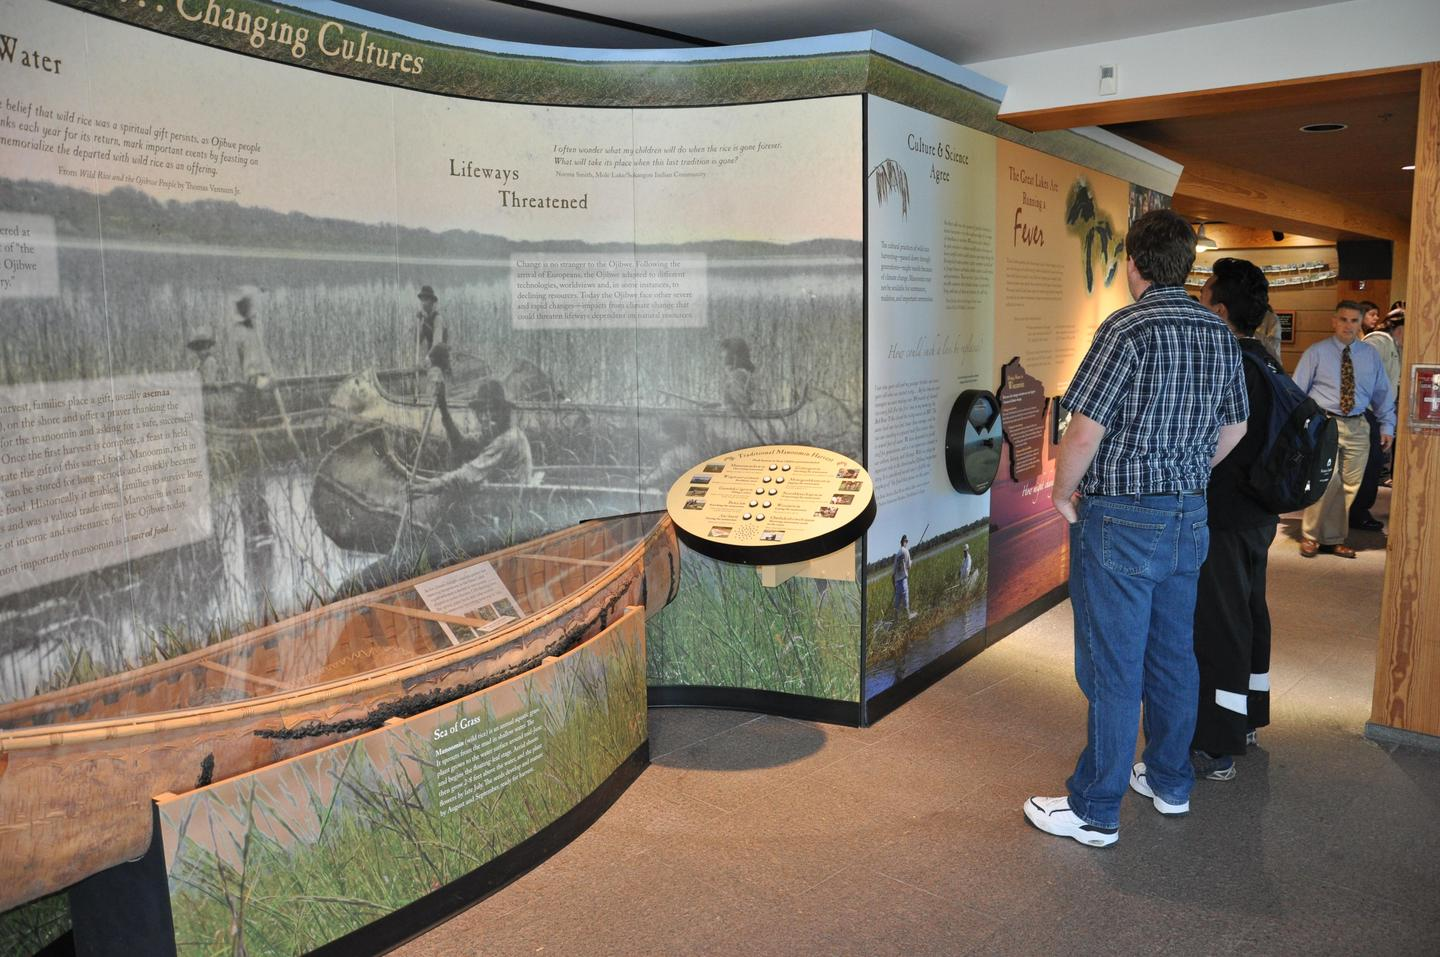 Changing Climate Changing Cultures exhibitExhibits tell the story of this area, past and present.